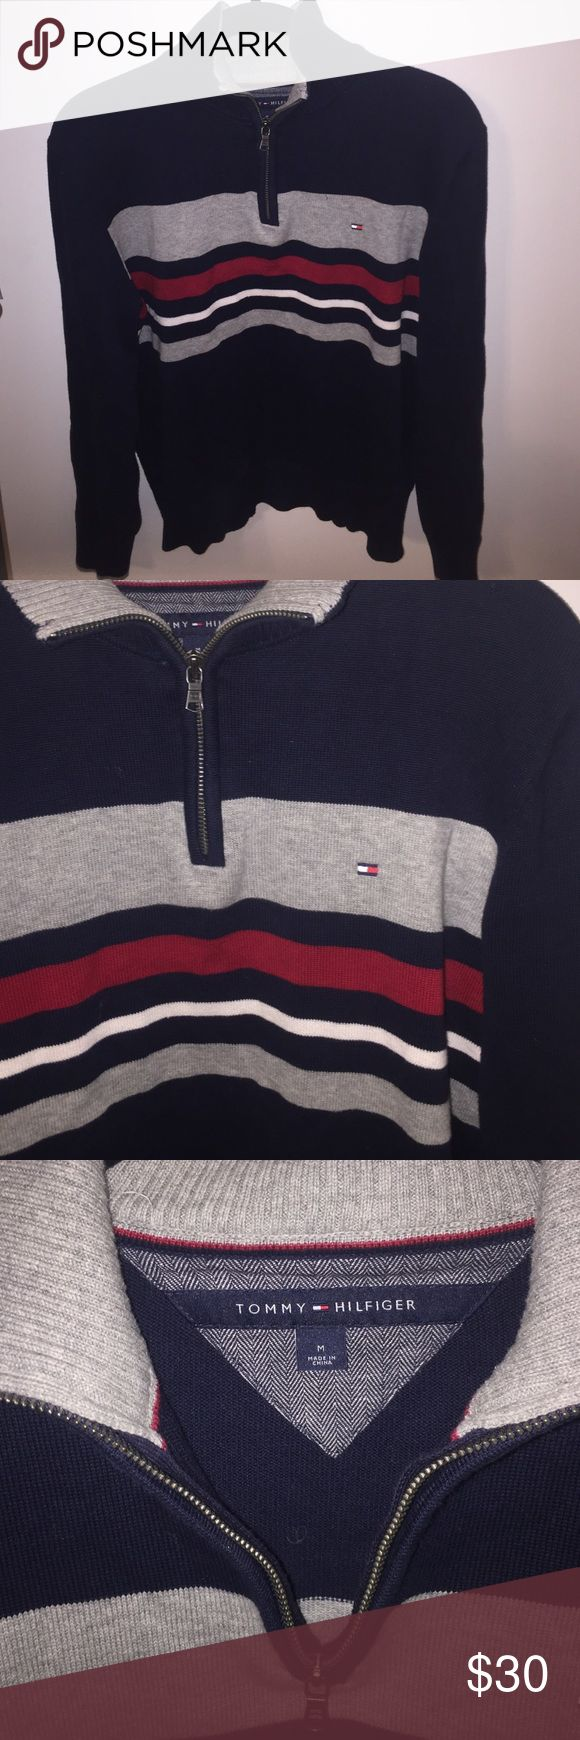 Tommy Hilfiger Zip Up Sweater/Sweatshirt Cute and stylish. Vintage look! Navy color with red and white stripes Tommy Hilfiger Tops Sweatshirts & Hoodies